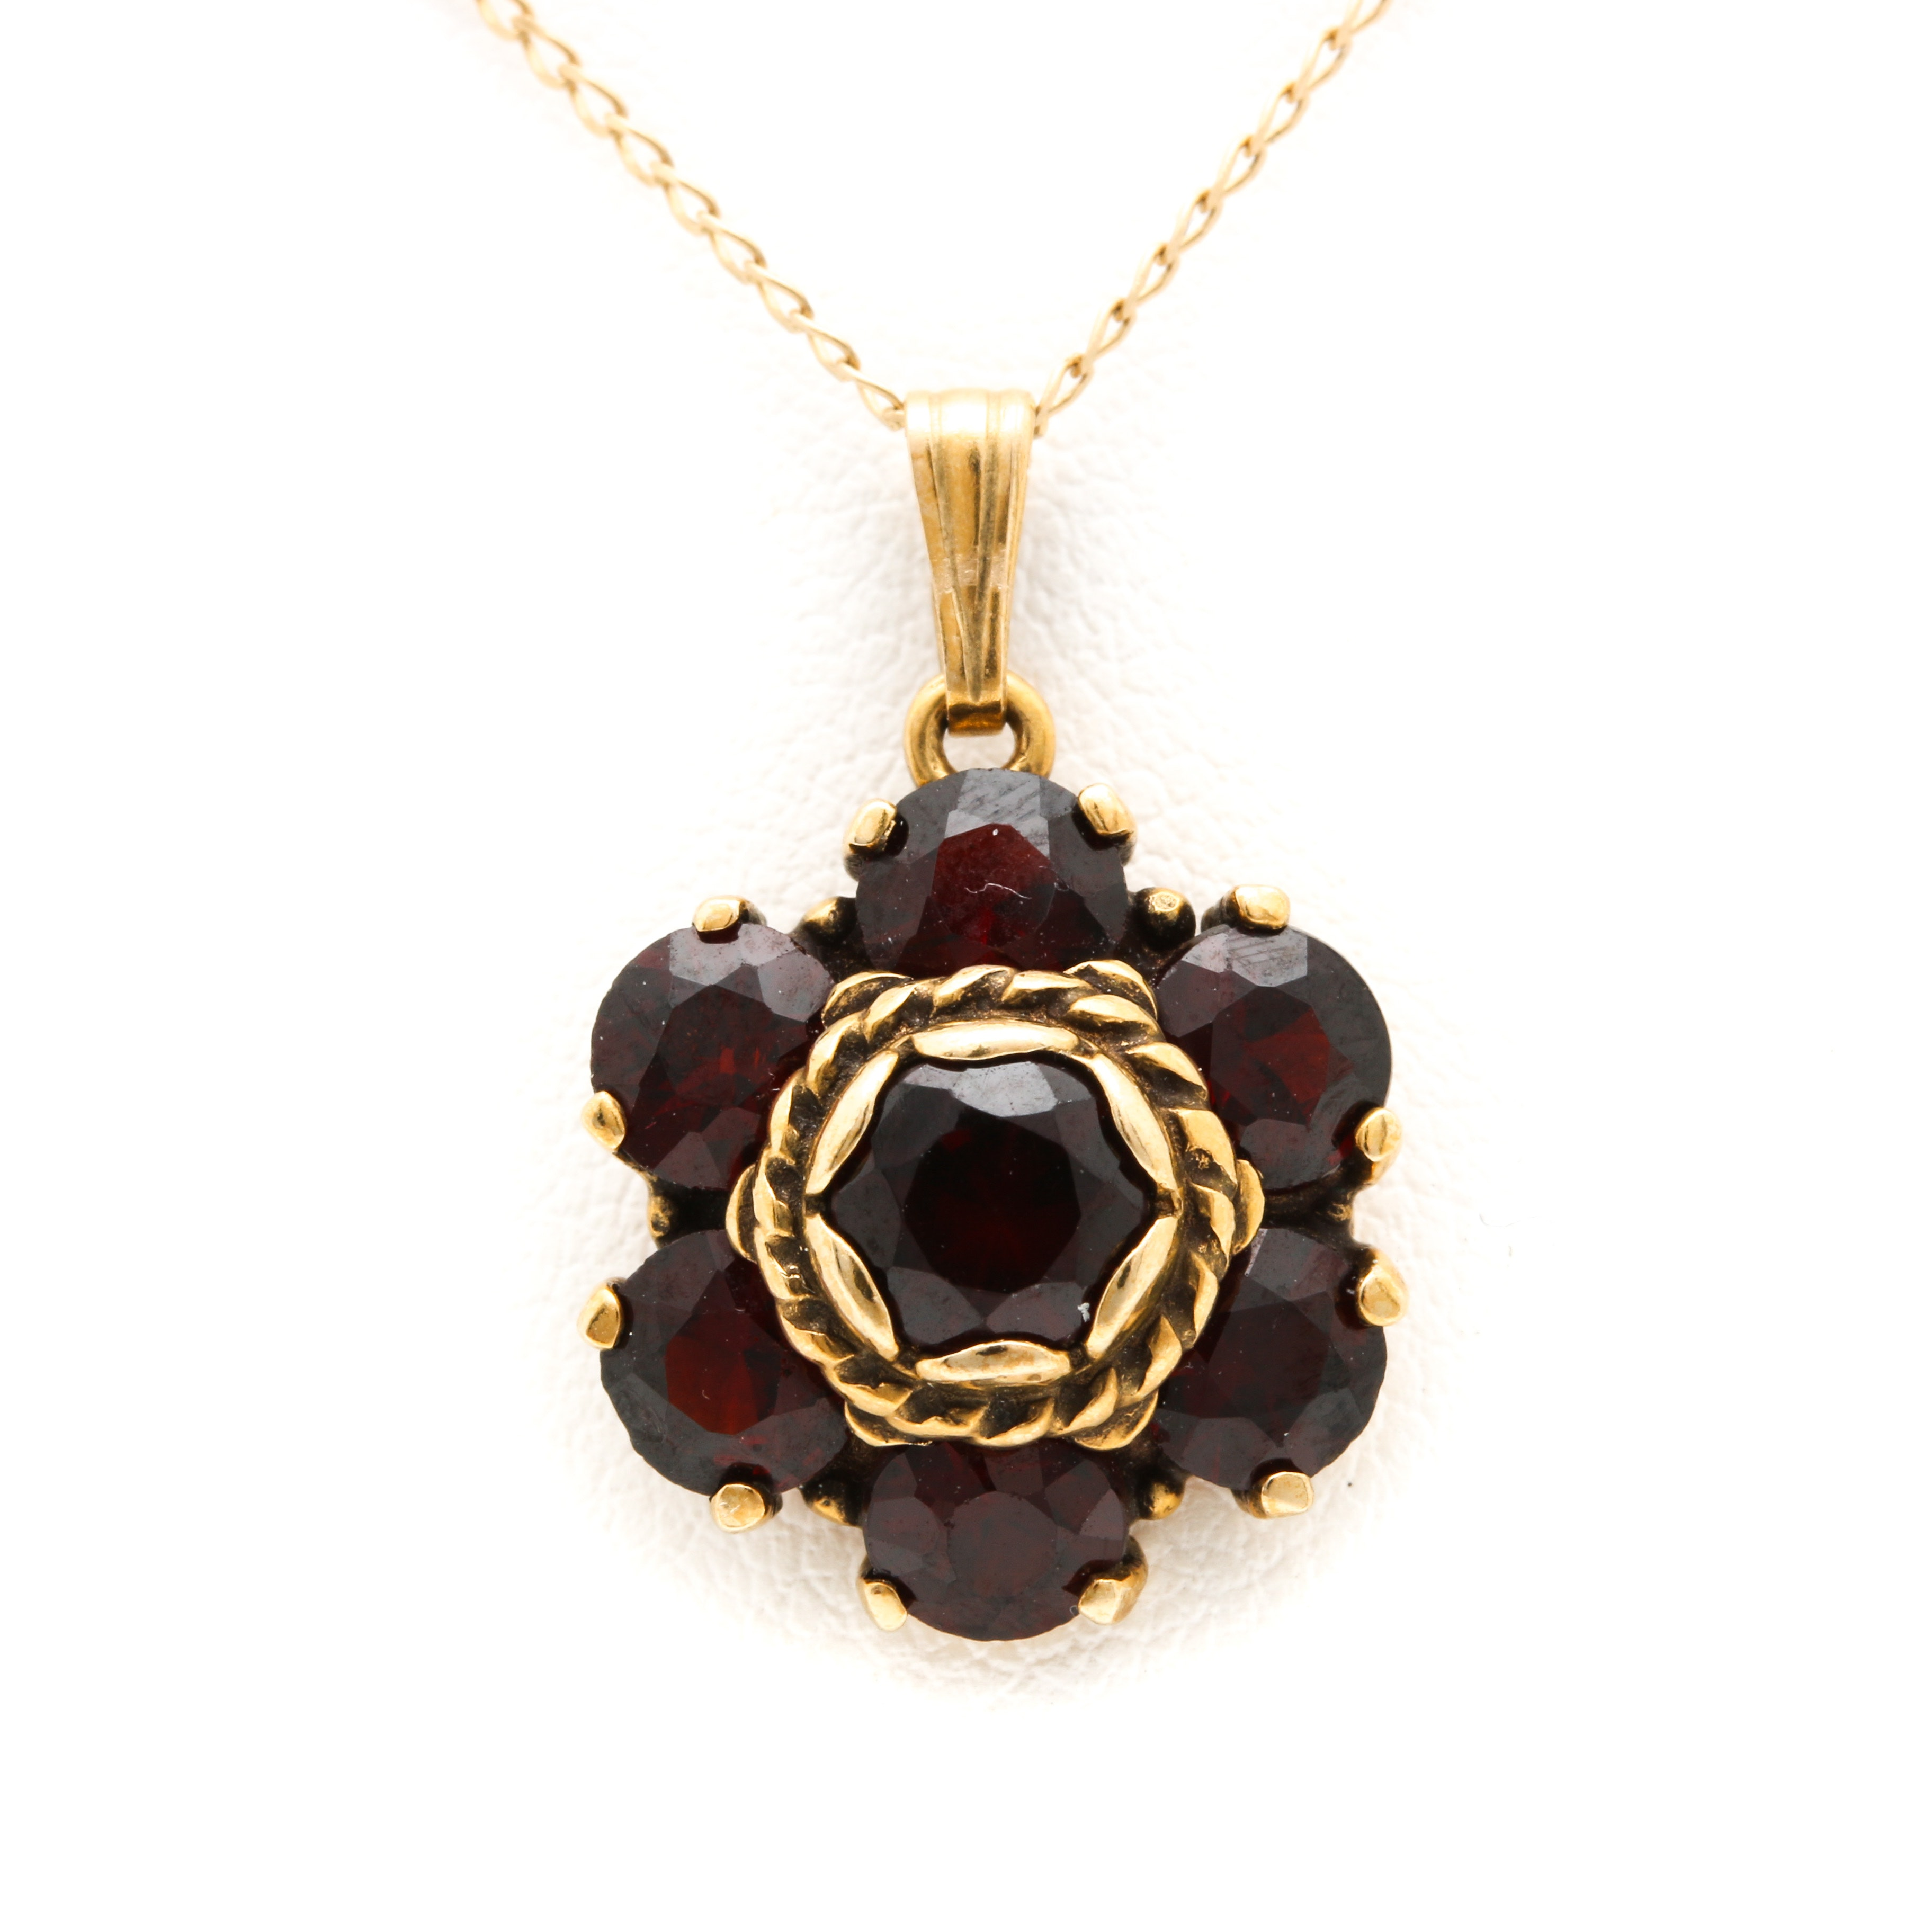 14K Yellow Gold Pyrope Garnet Necklace